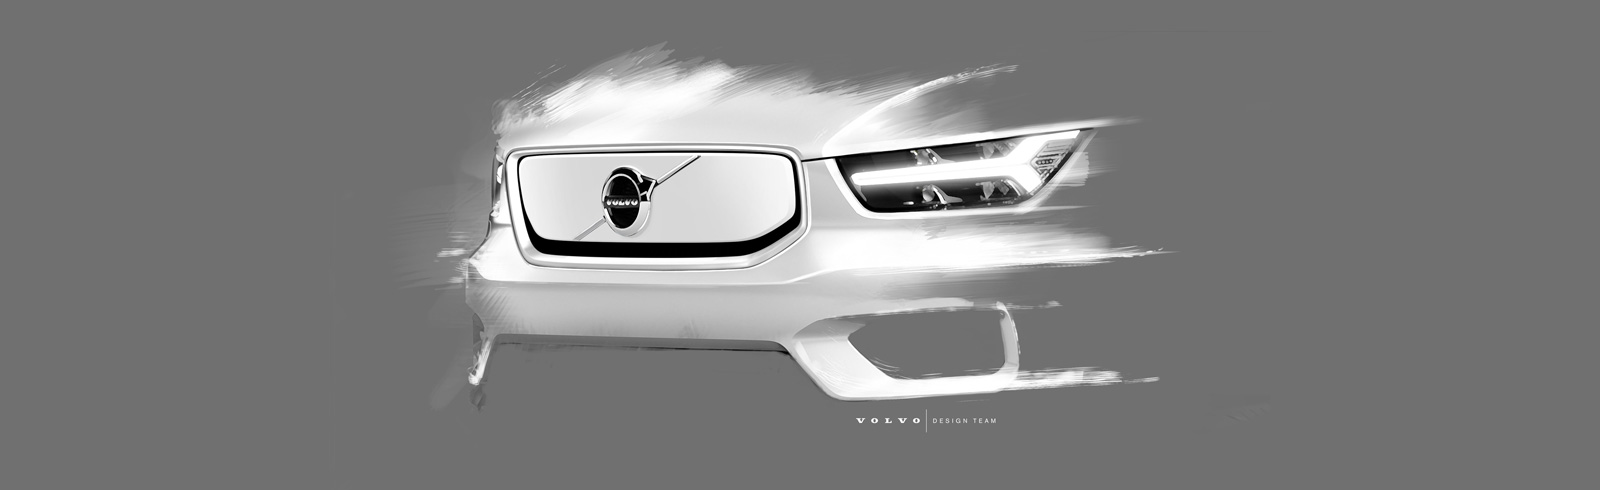 The fully-electric Volvo XC40 is teased again, will be based on the CMA platform